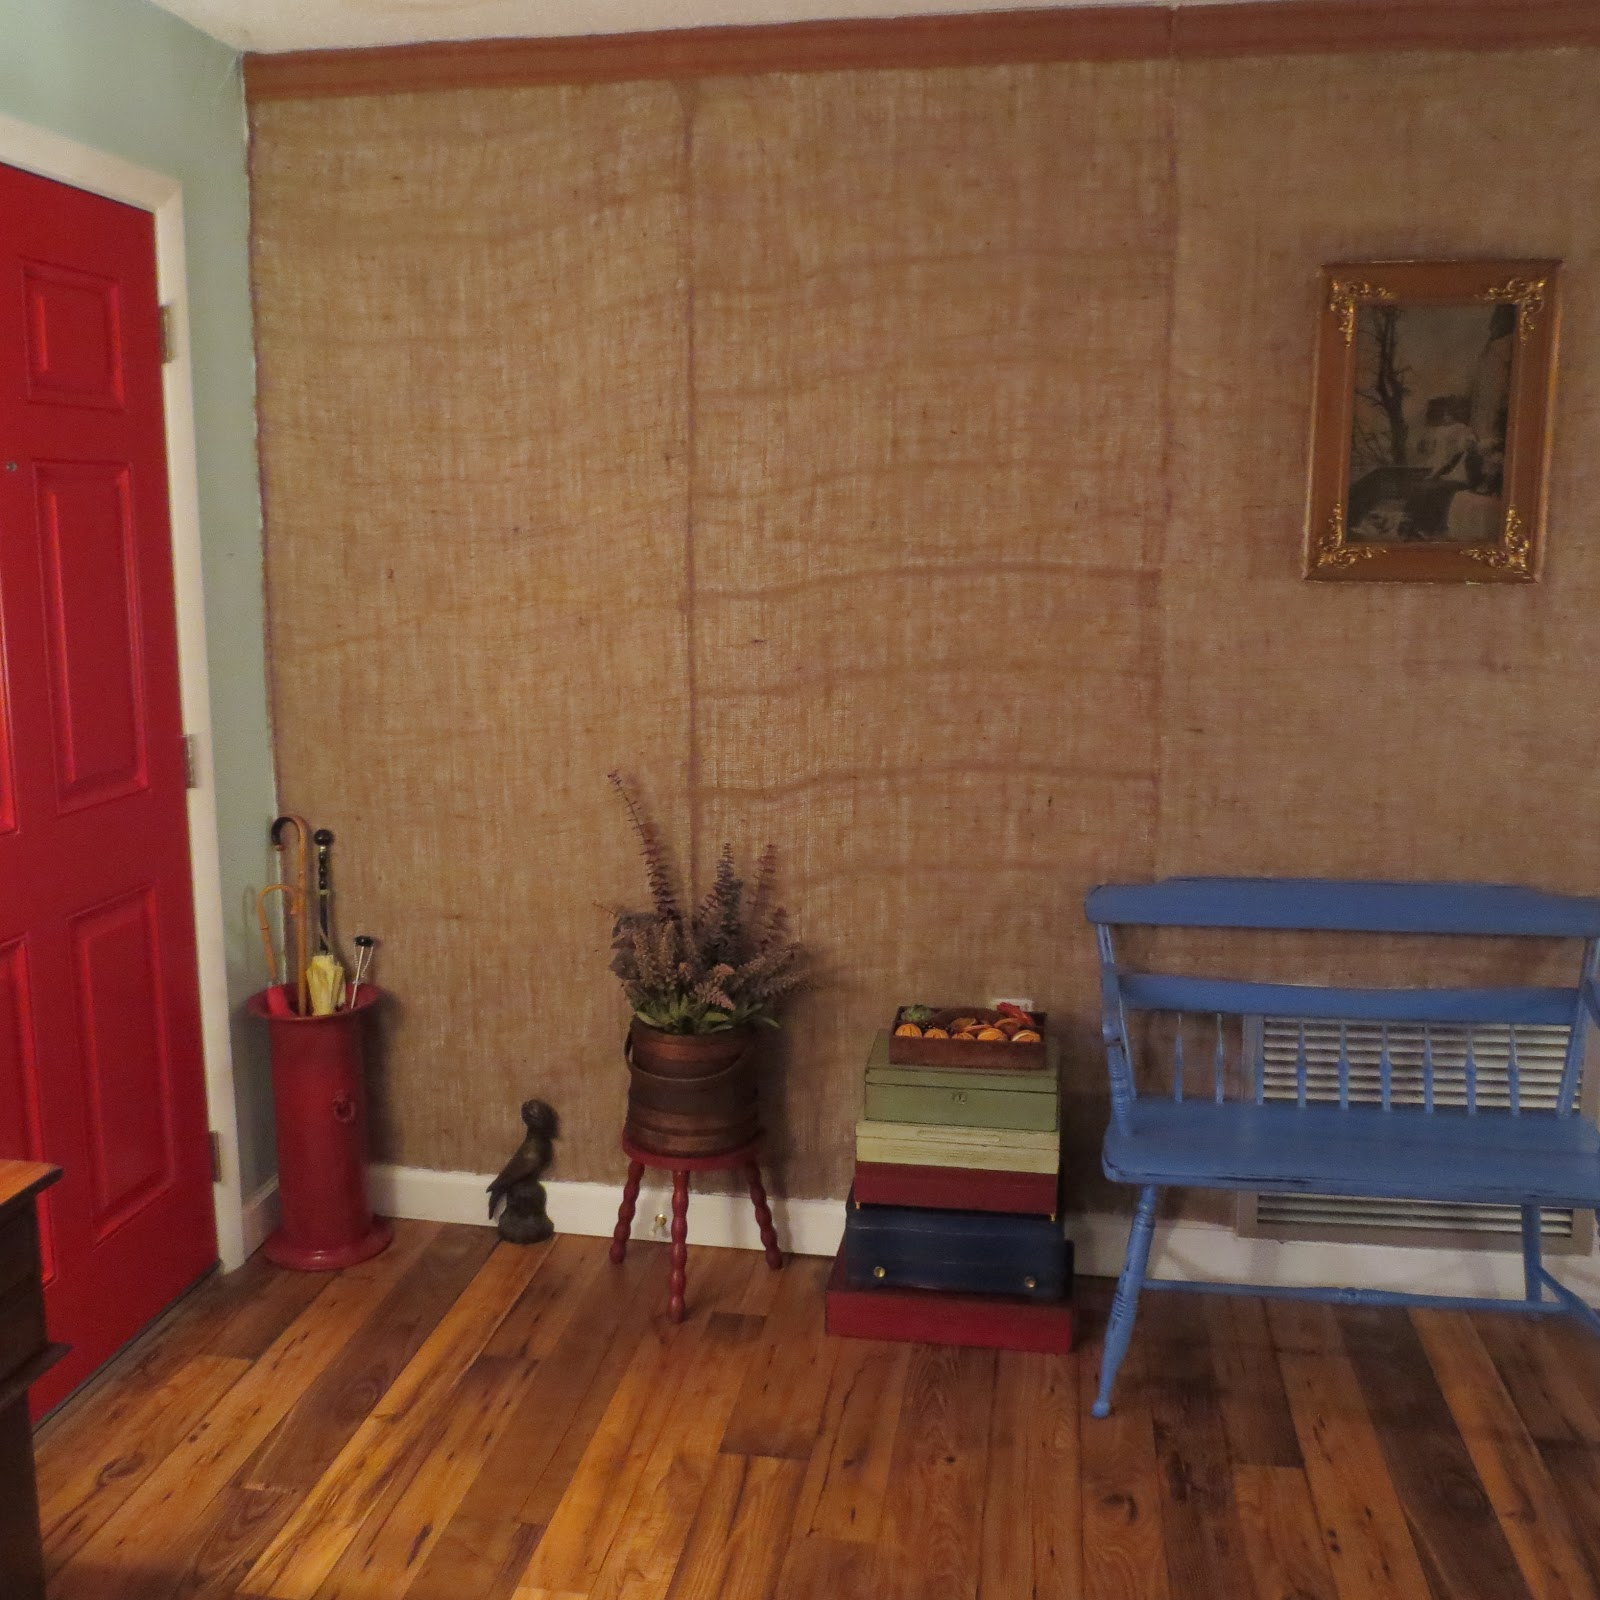 Red shed vintage trash talk tuesdays tutorial a How to disguise wood paneling